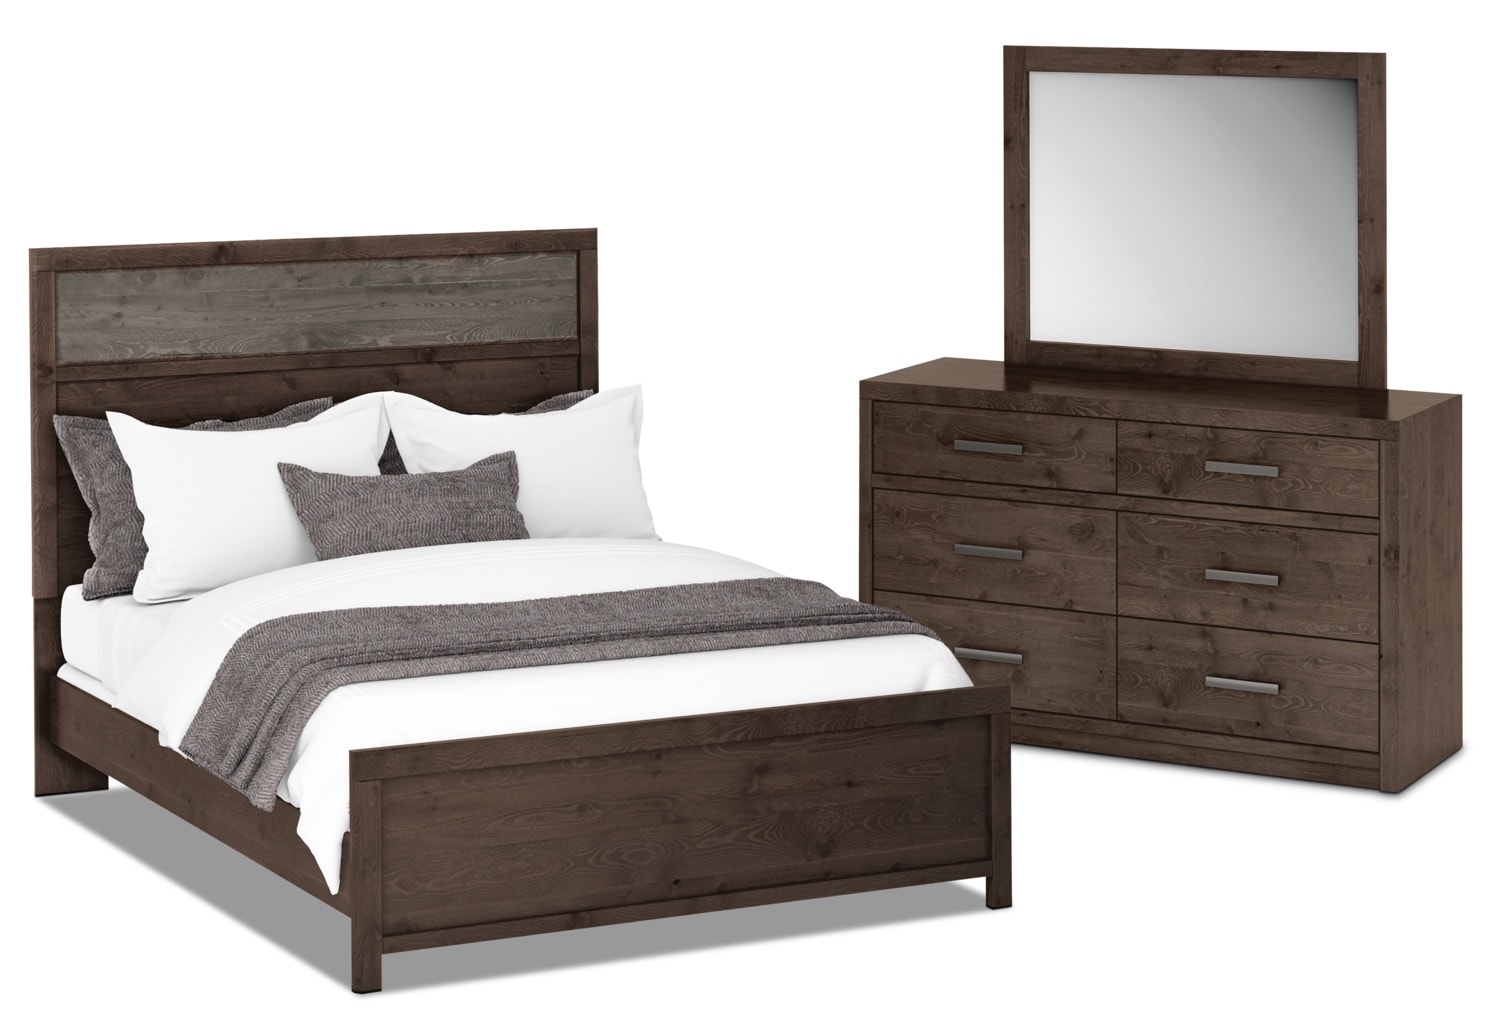 Onyx 5-Piece Queen Bedroom Package